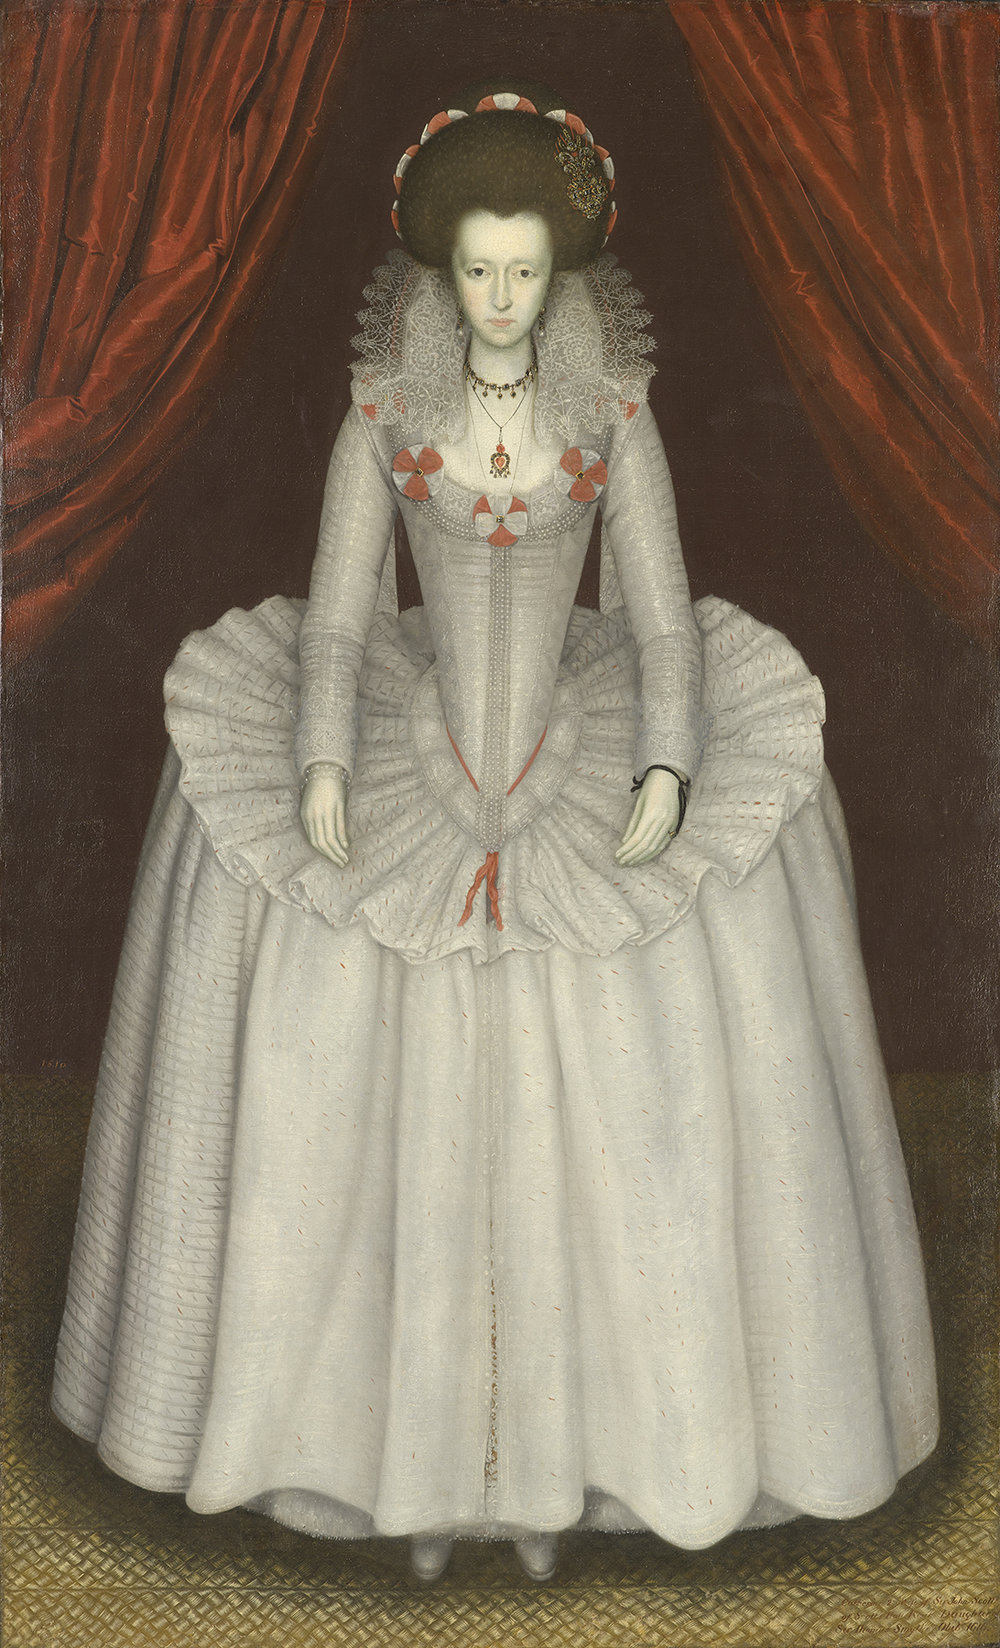 British School, Portrait of a Lady, circa 1610, oil on canvas, 81 x 50 in., Gift of Mr. and Mrs. James MacLamroc